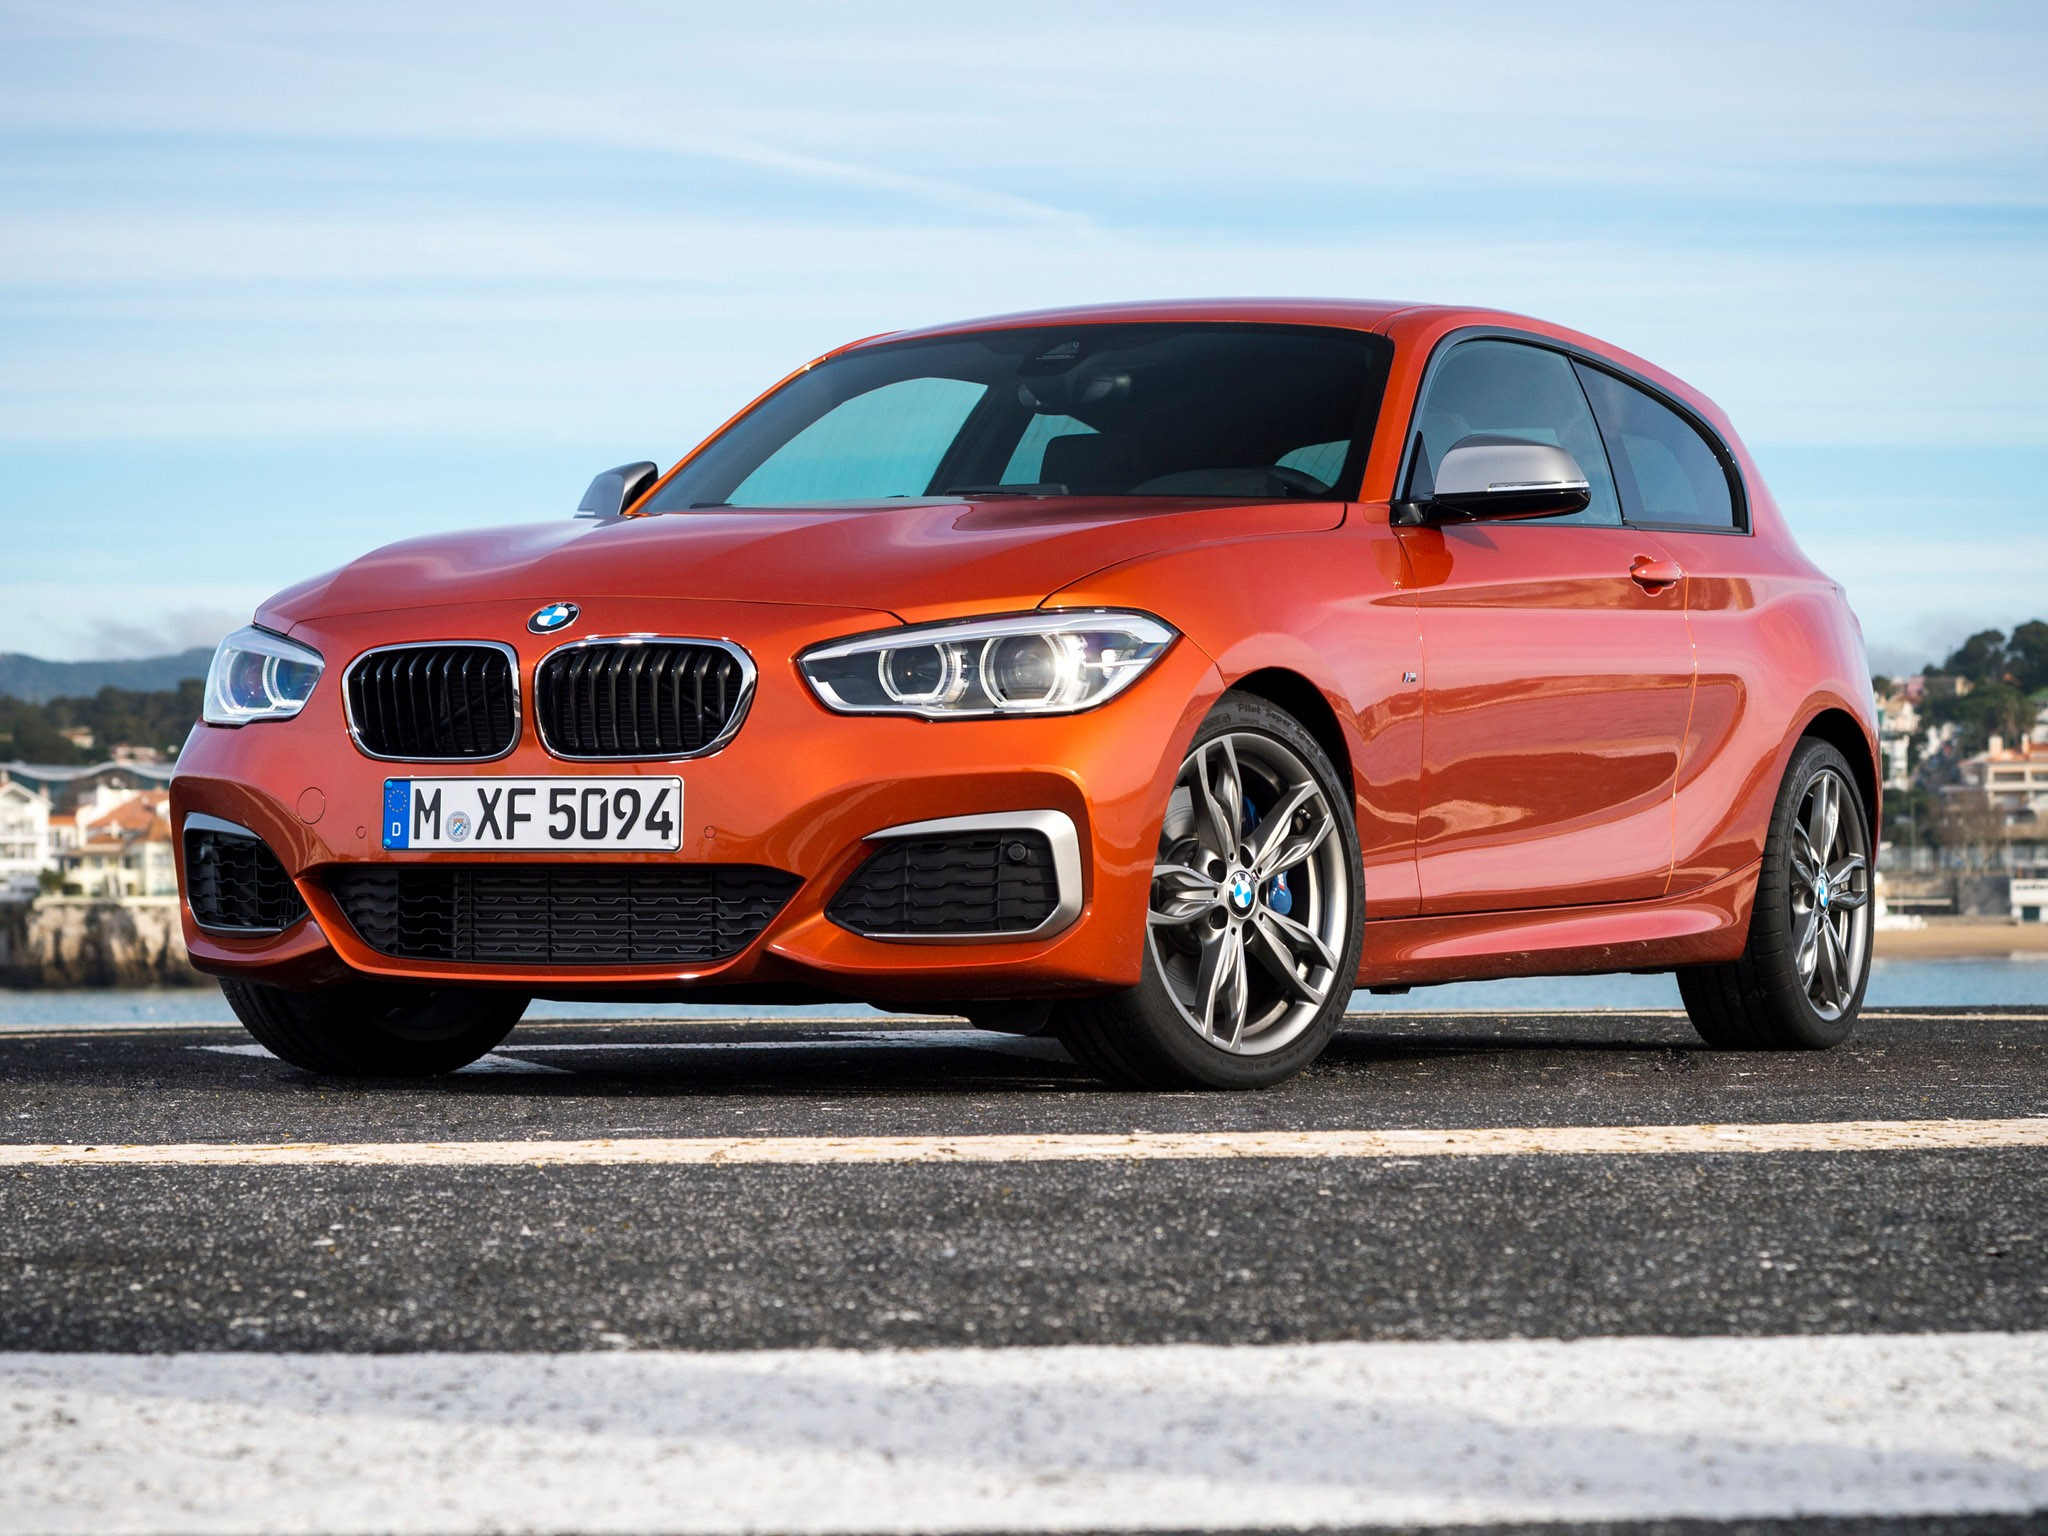 2015 Bmw 1 Series M135i 3 Door F21